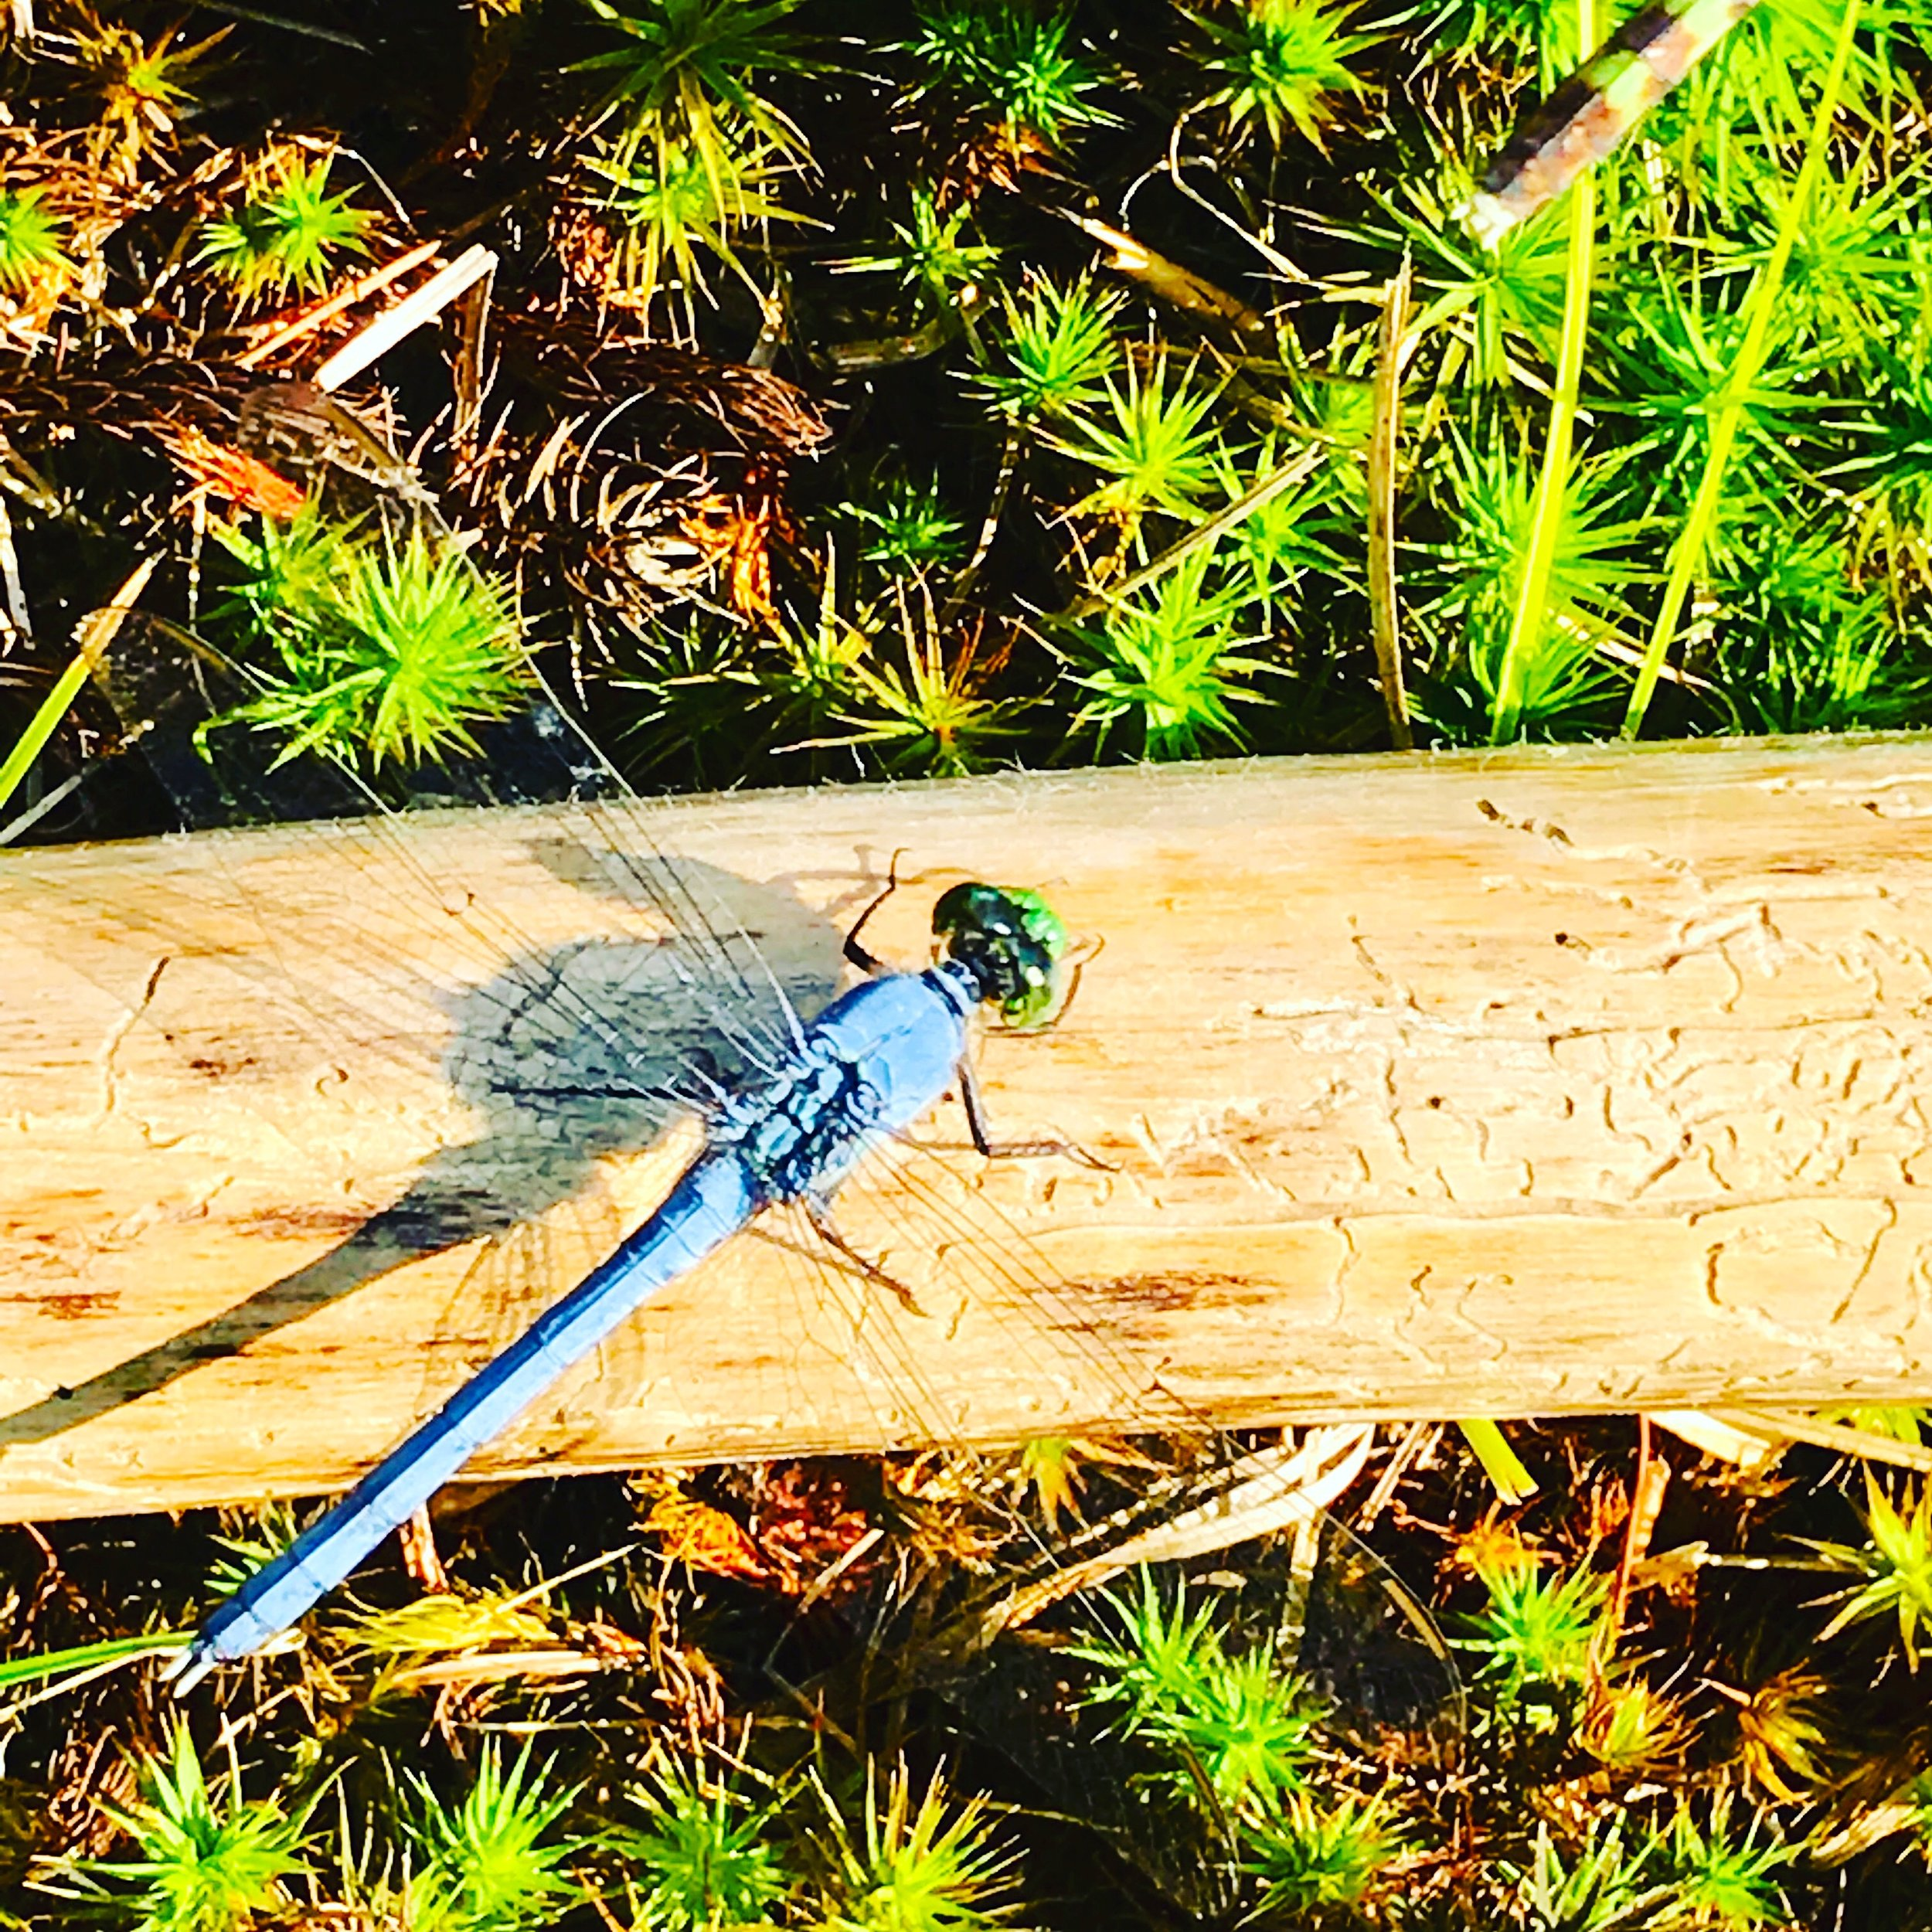 Dragonfly on my walking stick in the meadow